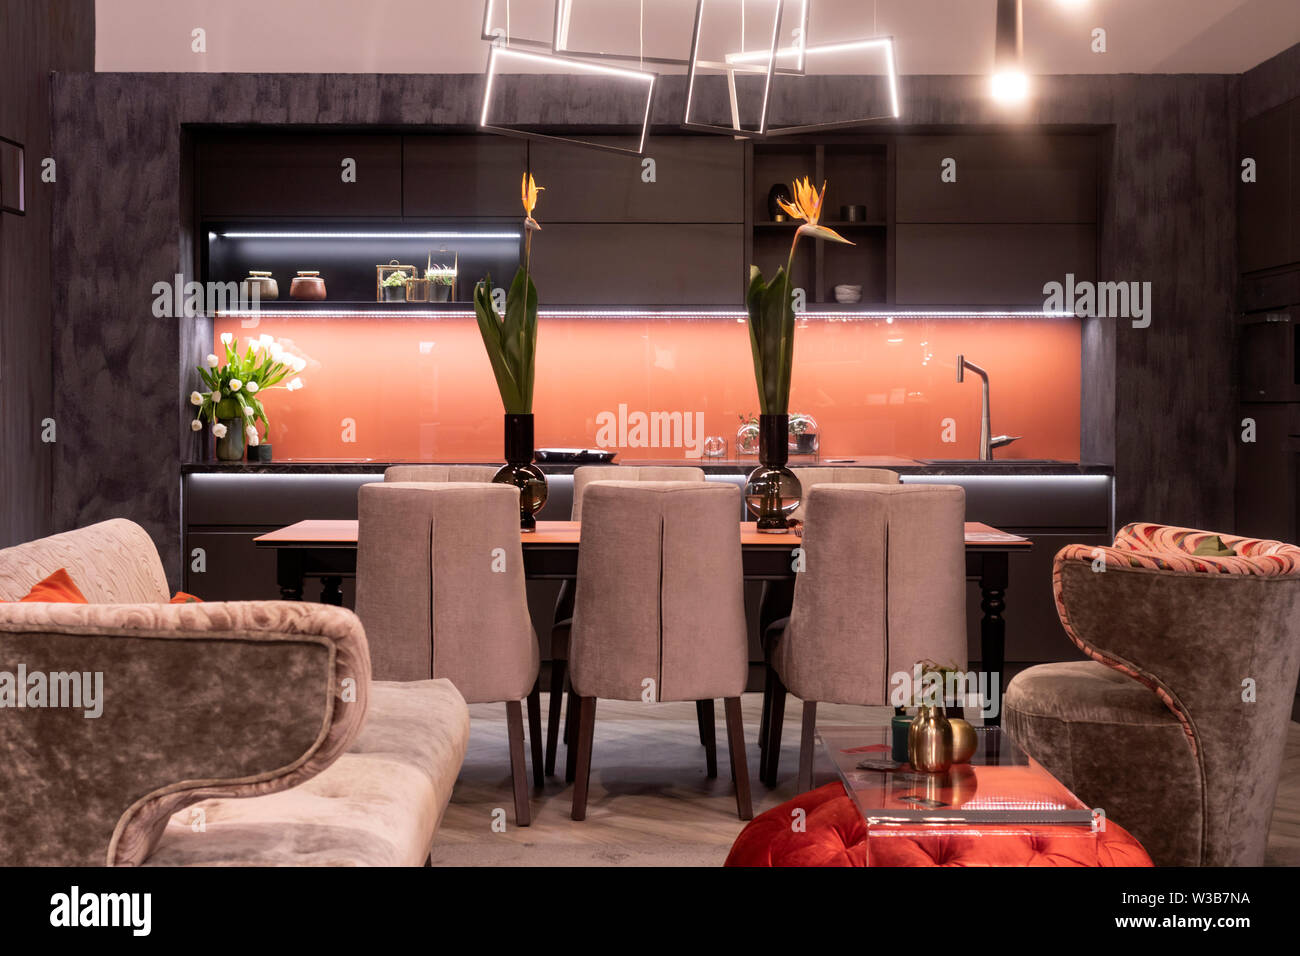 A Modern Exclusive Dining Room With Table Chairs Kitchen Counter Decoration In The Foreground Two Armchairs And A Small Glass Table Stock Photo Alamy